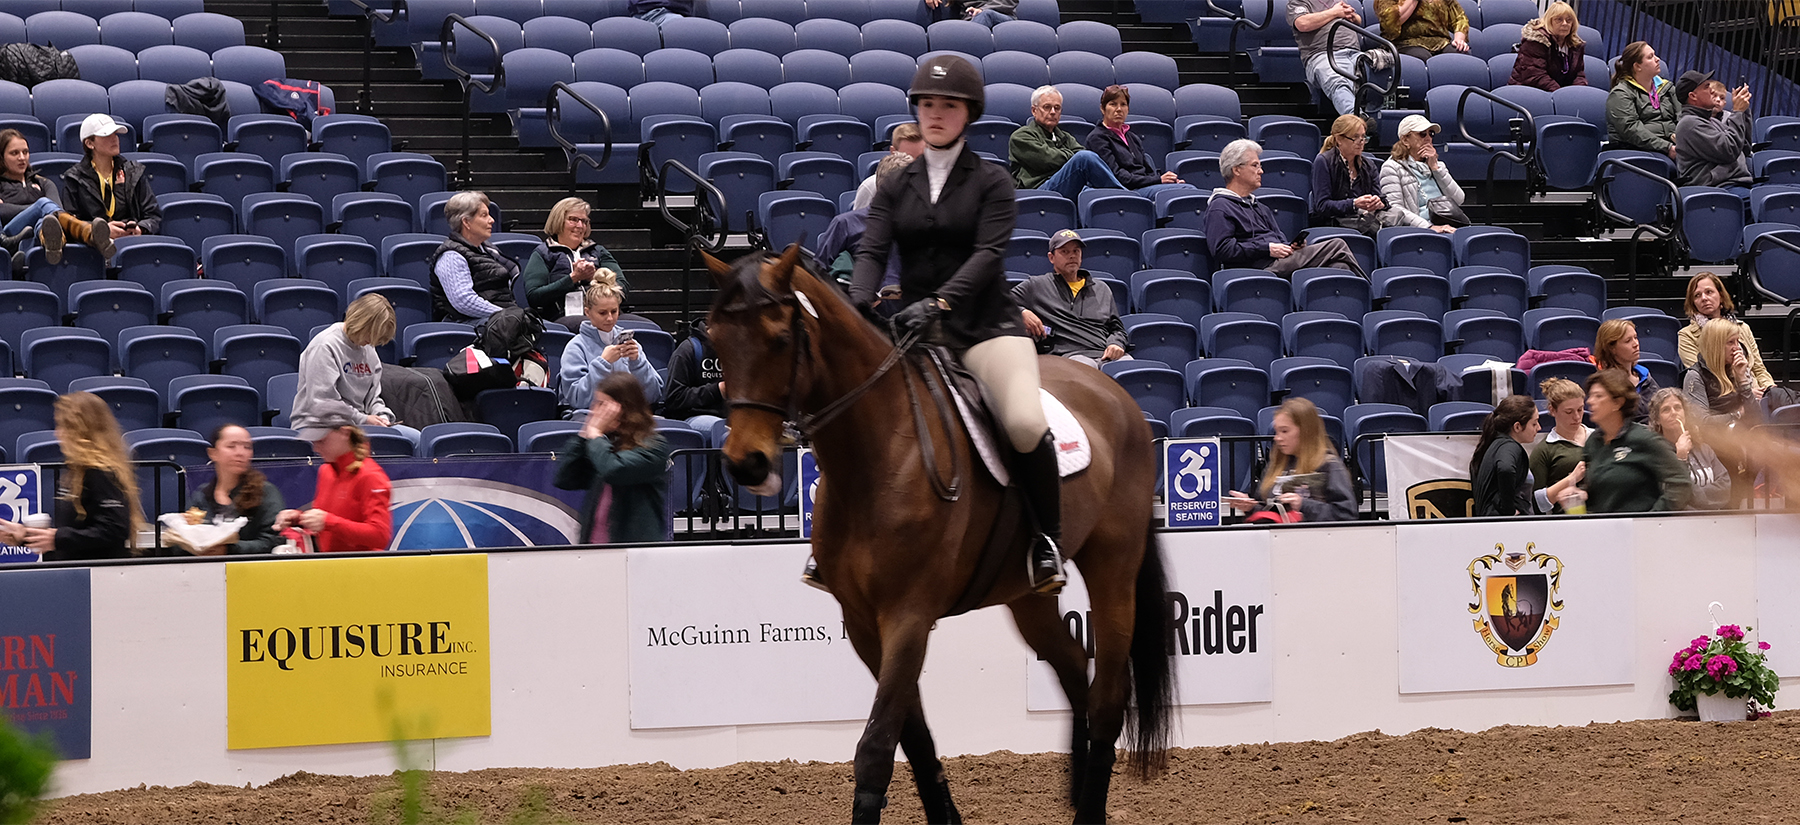 Equestrian Places in Top 10 at UCONN Tournament of Champions